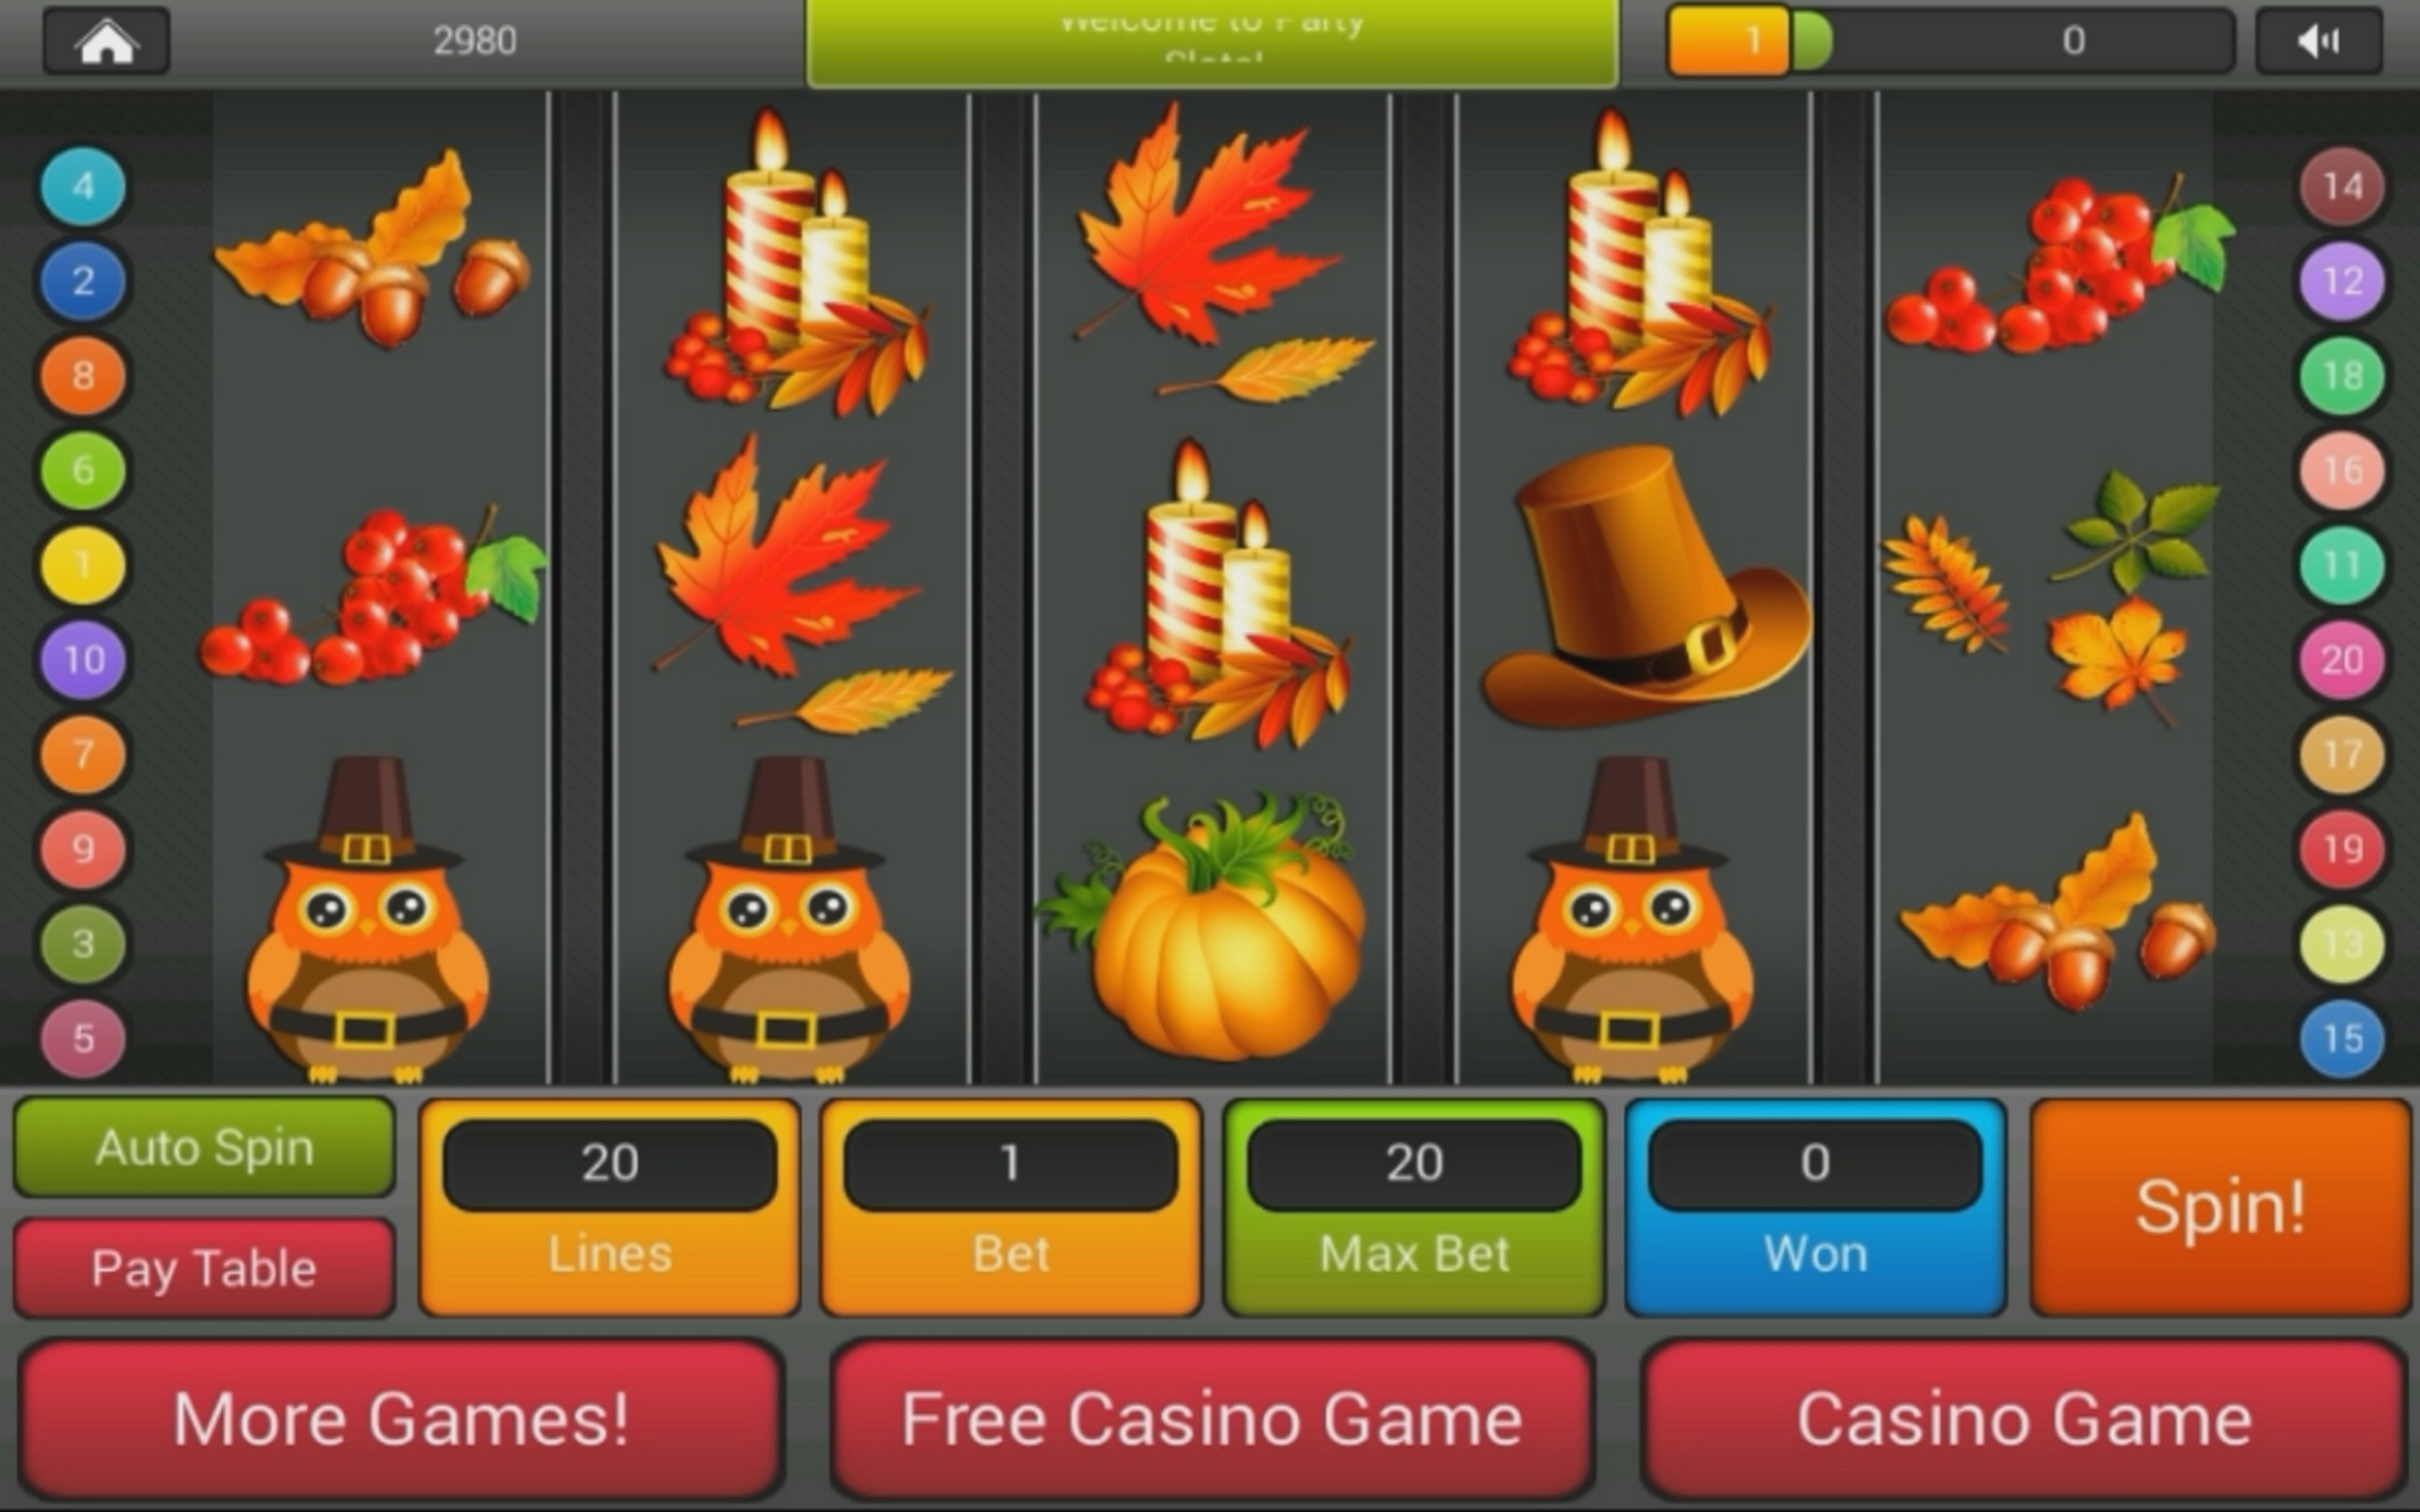 Thanksgiving Slots | Play FREE Thanksgiving-themed Slot Machine Games